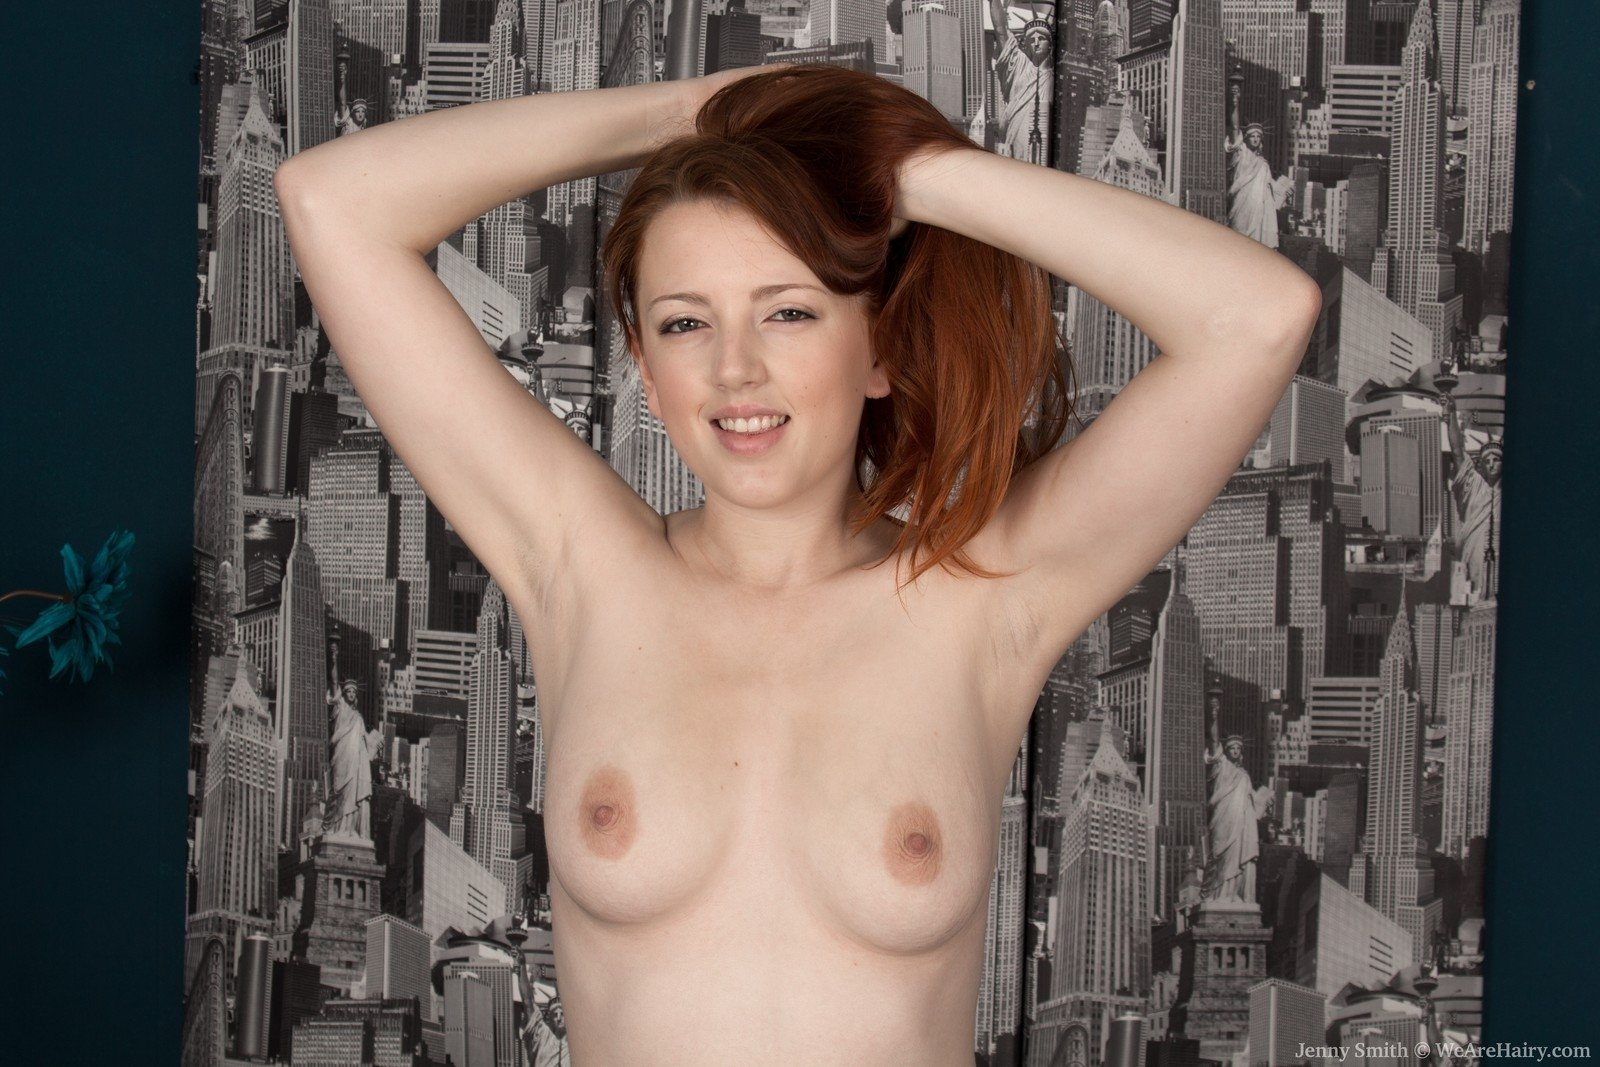 xnxx hot big boobs add photo